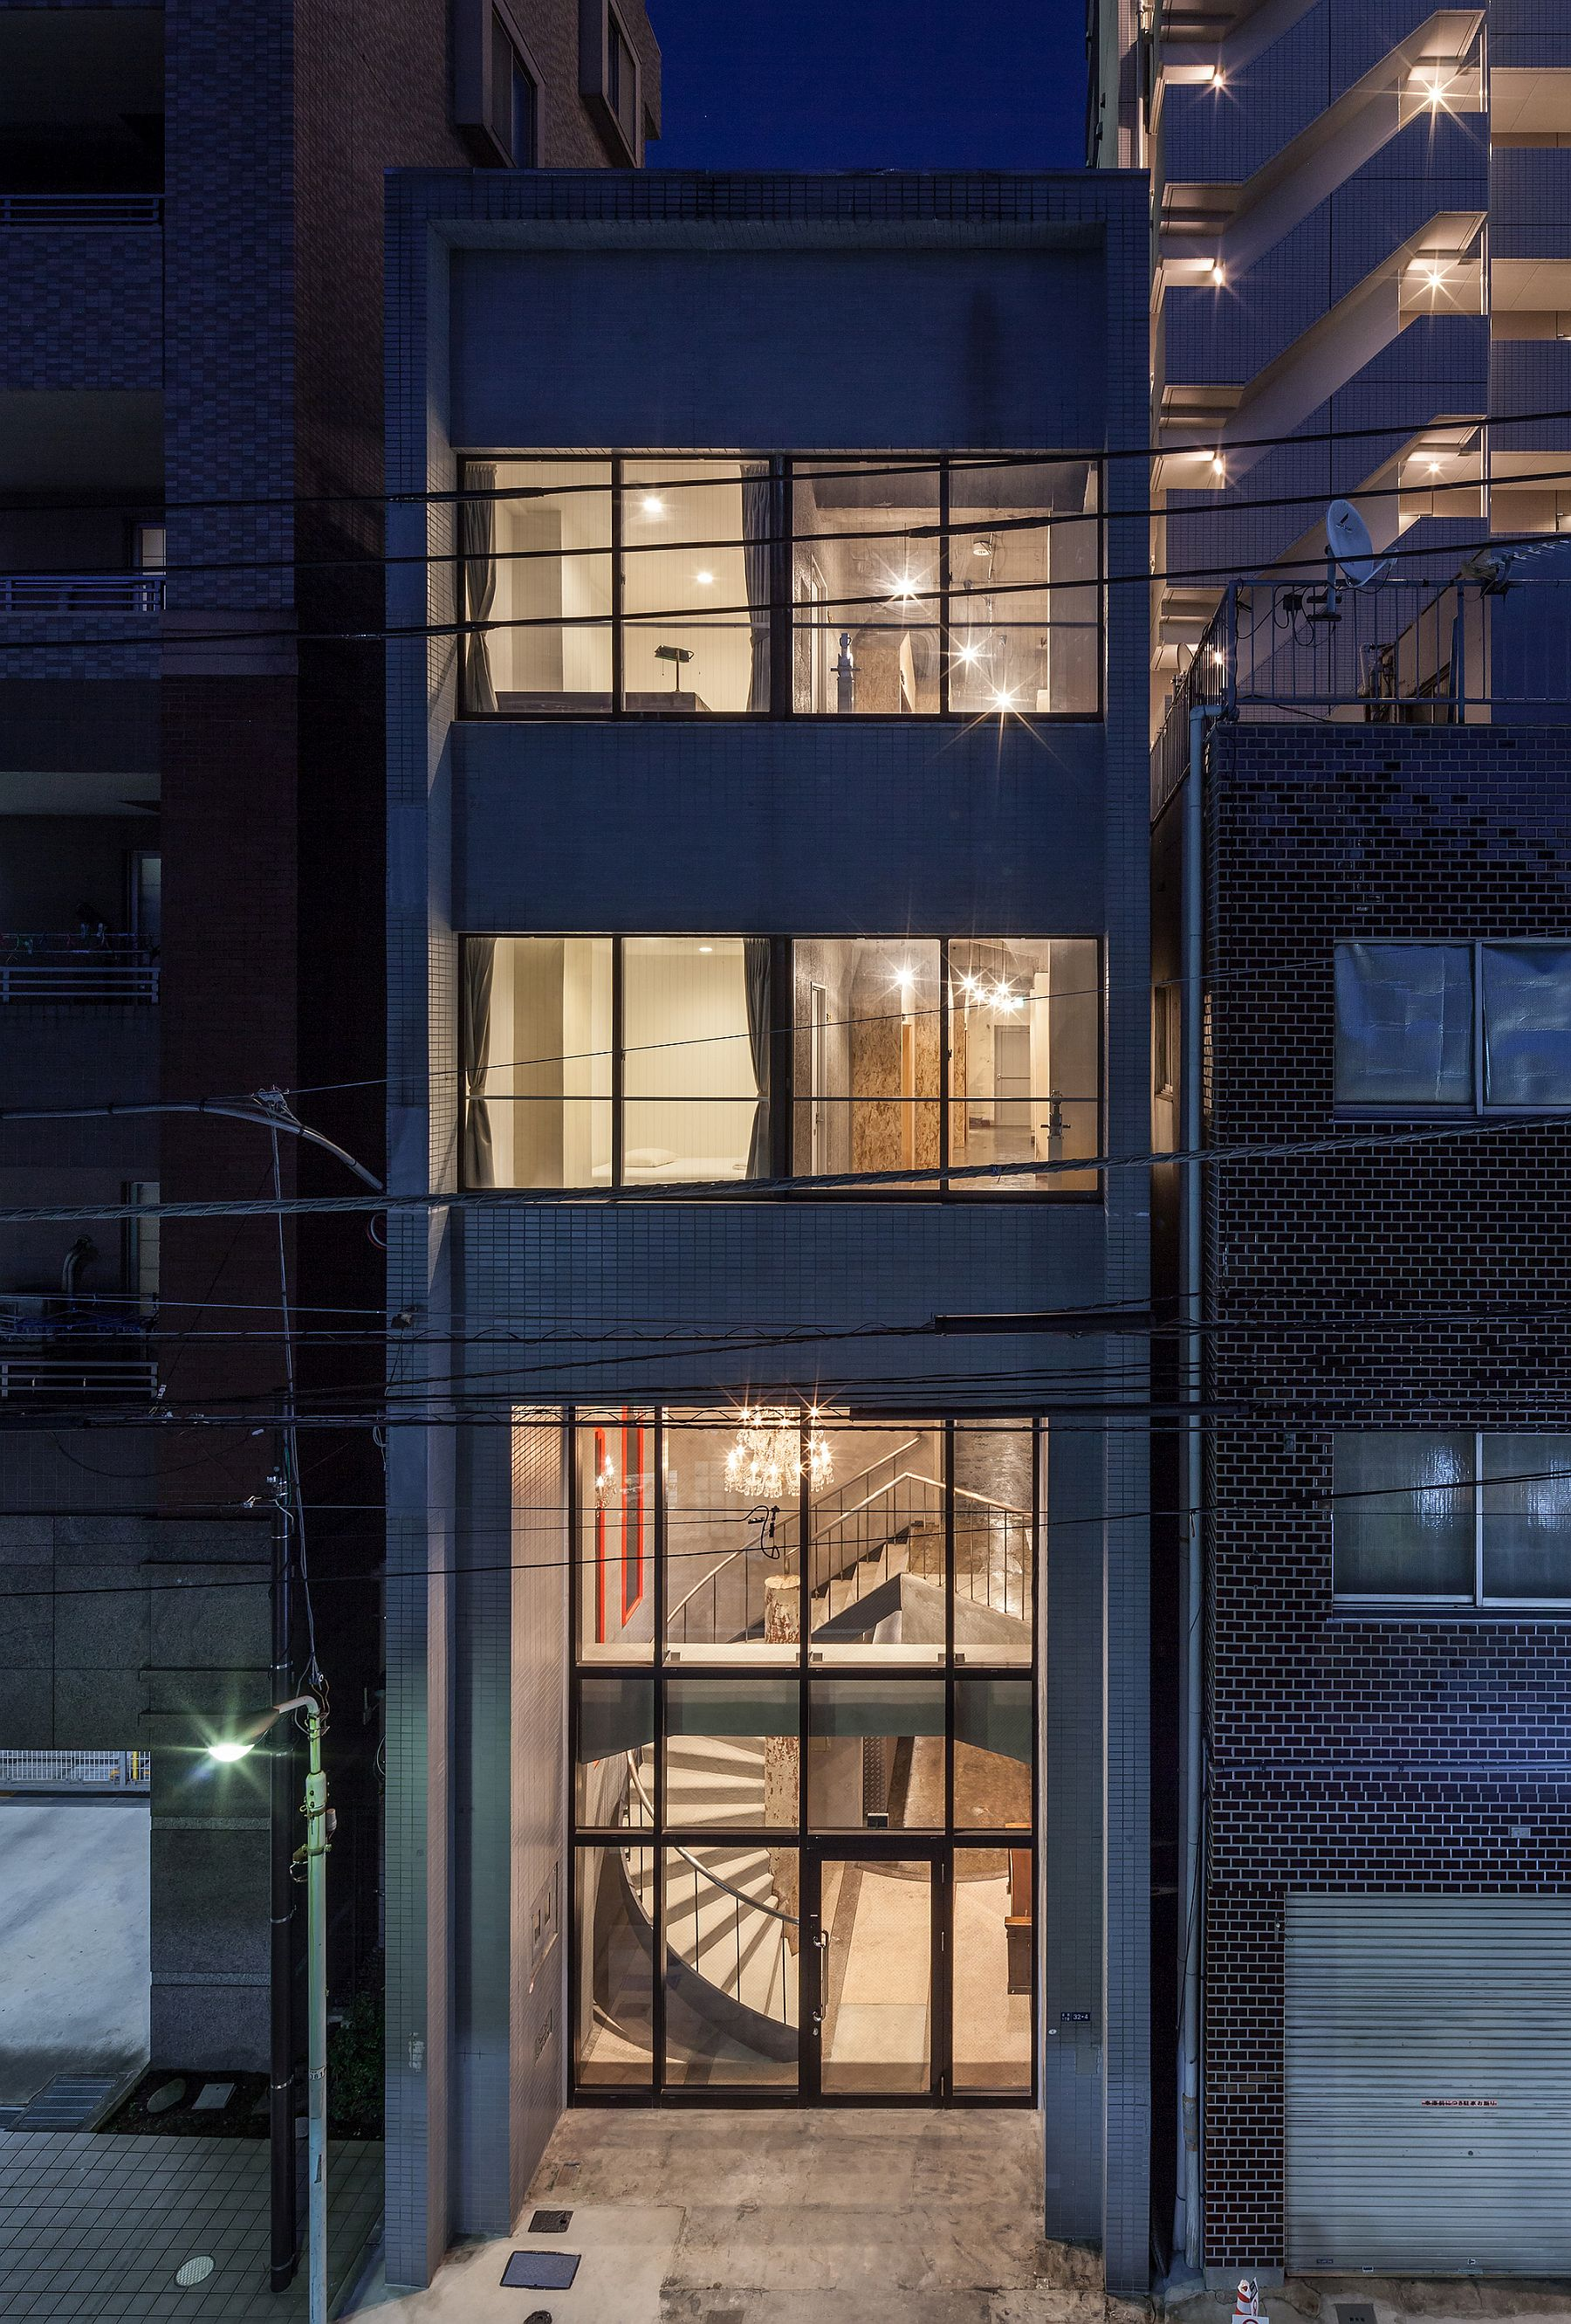 Narrow building relies on vertical space to provide smart sleeping quarters